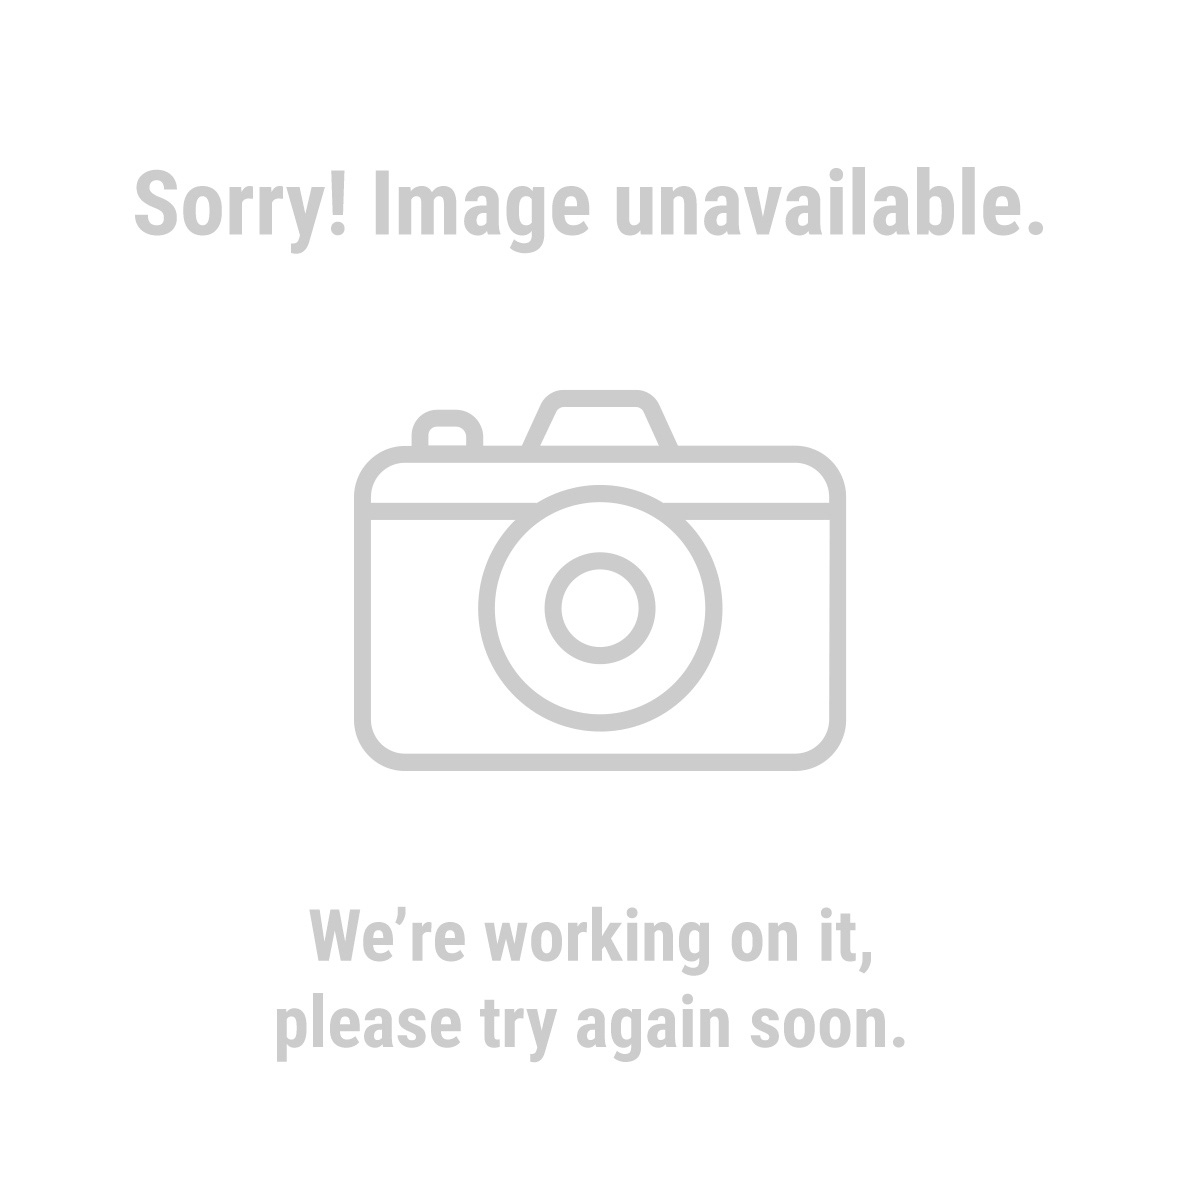 Greenwood 61368 4 gal. Backpack Sprayer